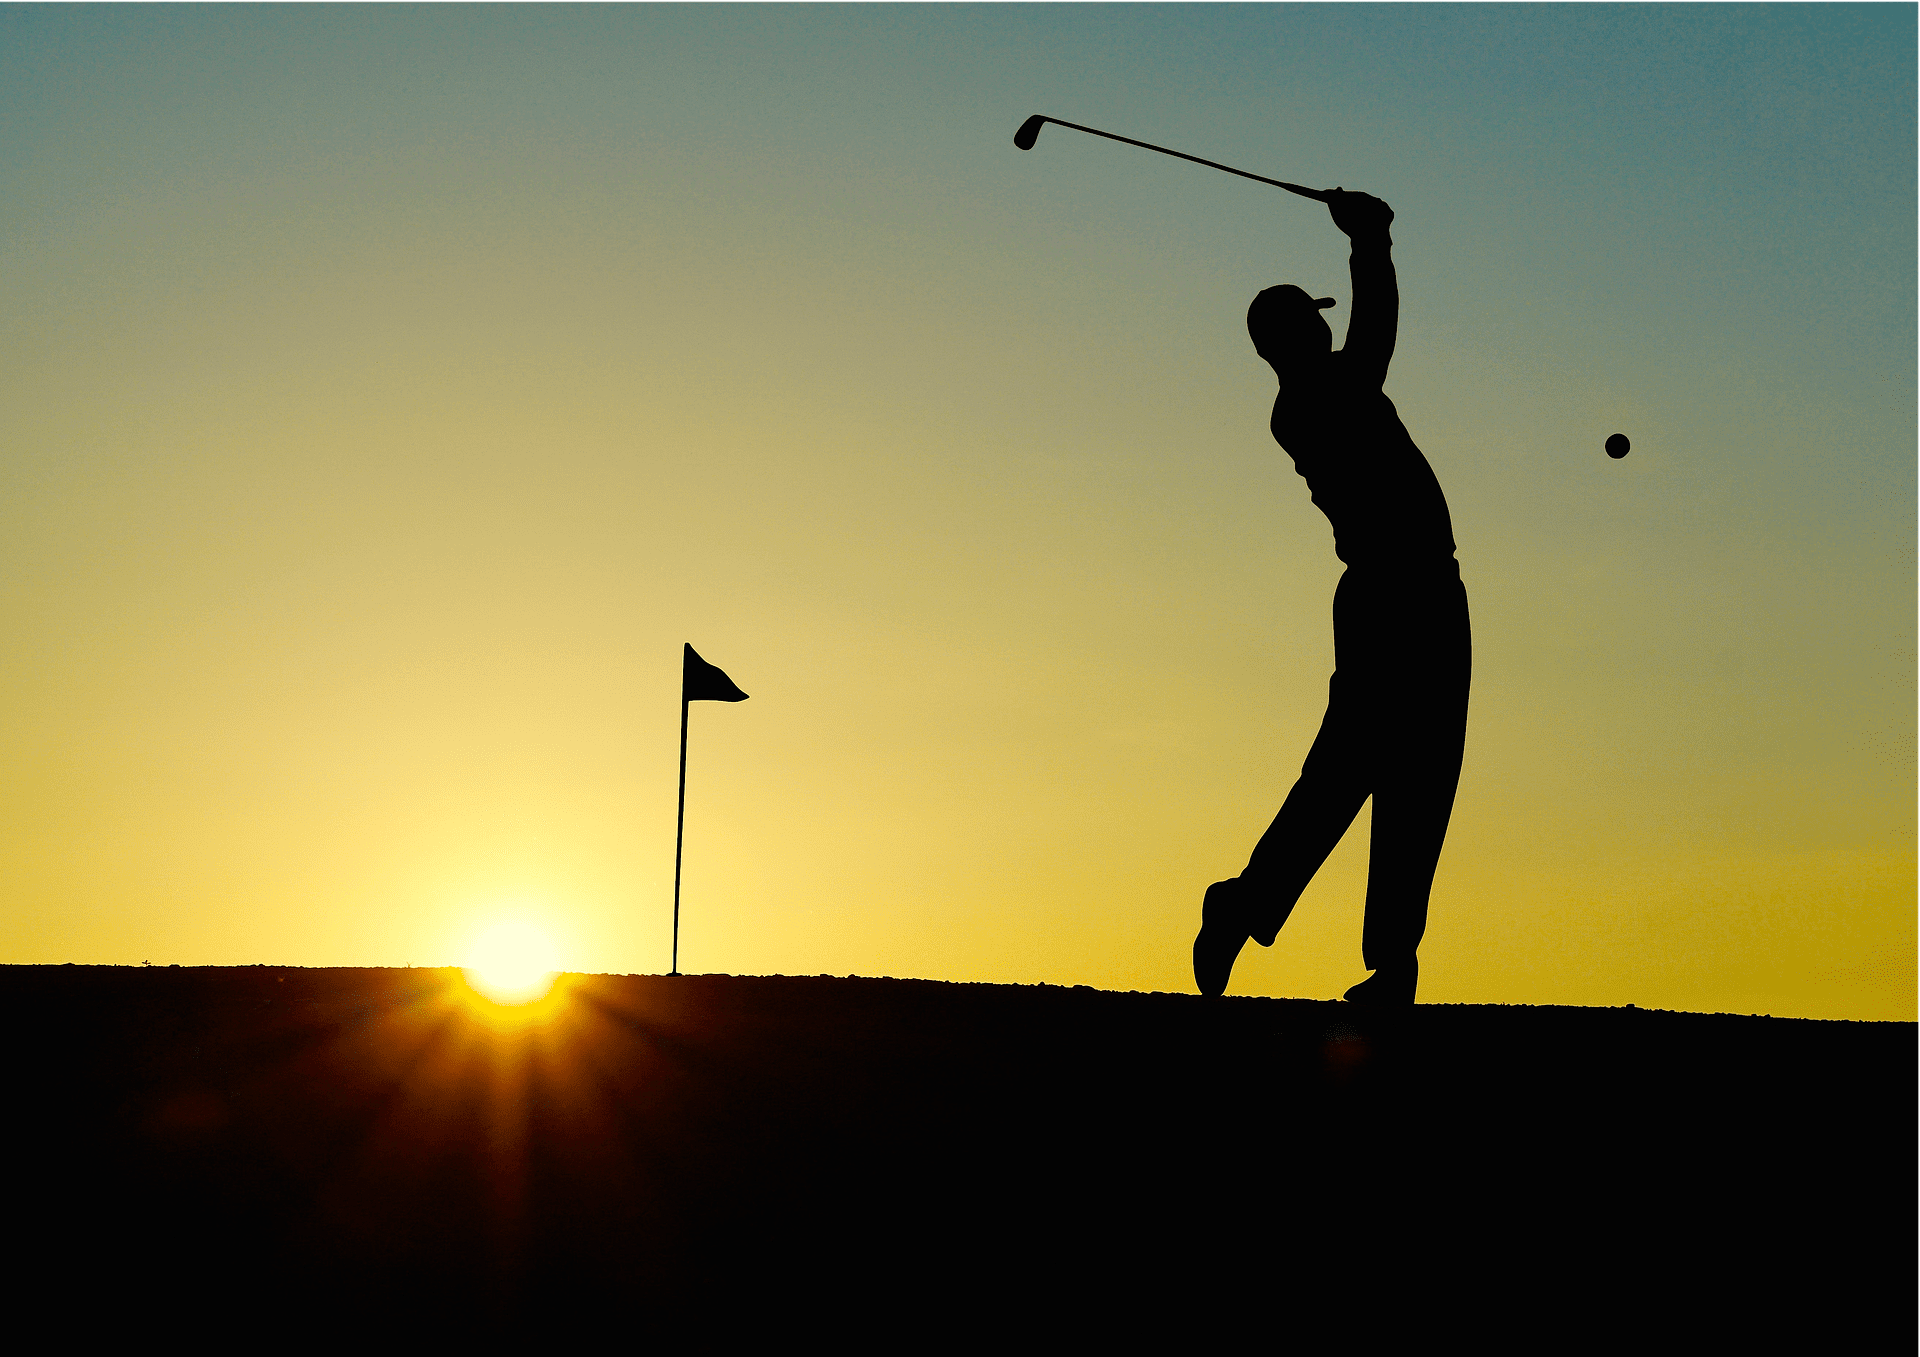 Will he ever get it in the hole? | Photo: Pixabay/Hebi B.